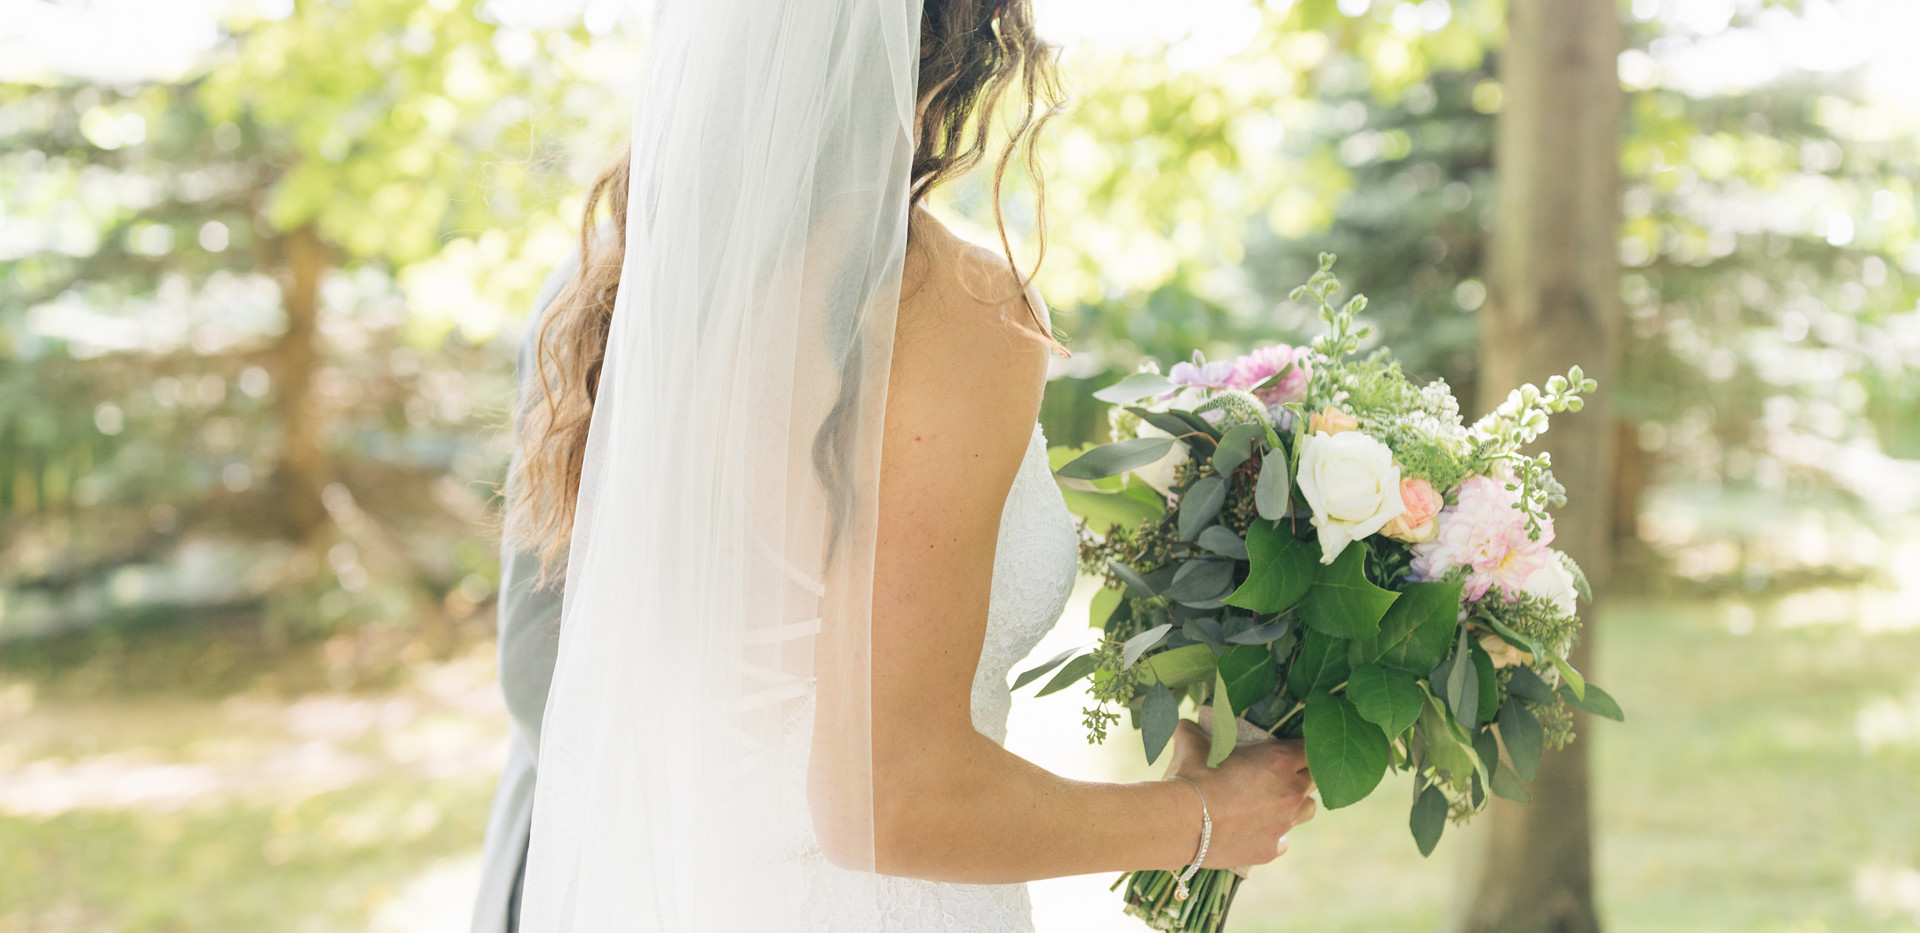 back side view of bride with veil and bouquet